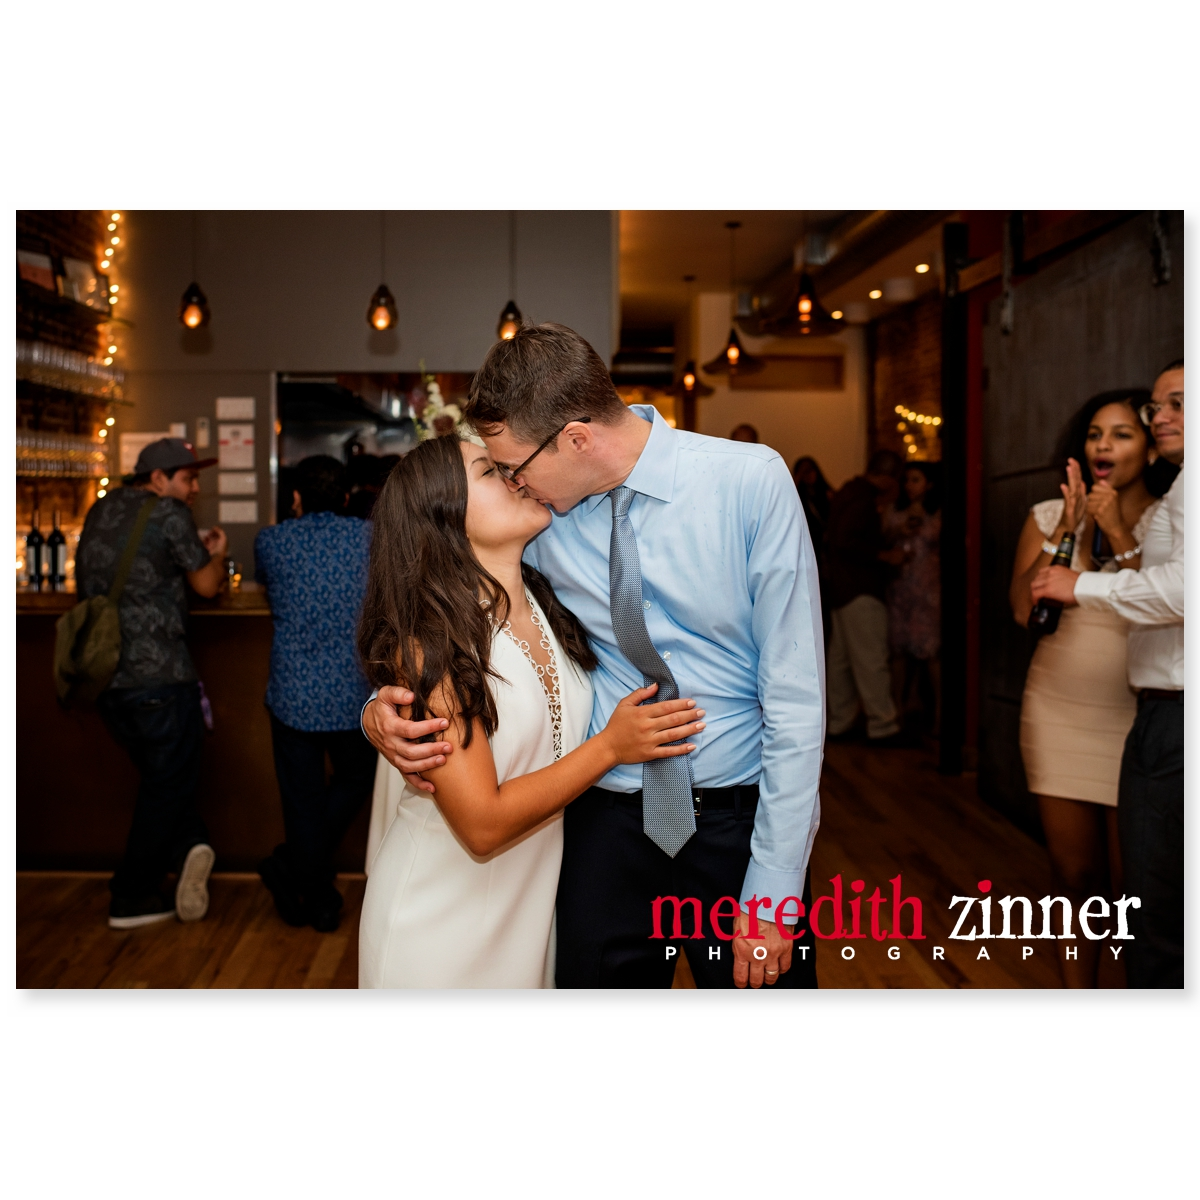 Meredith_Zinner_Photography_StilesCelebration_0458